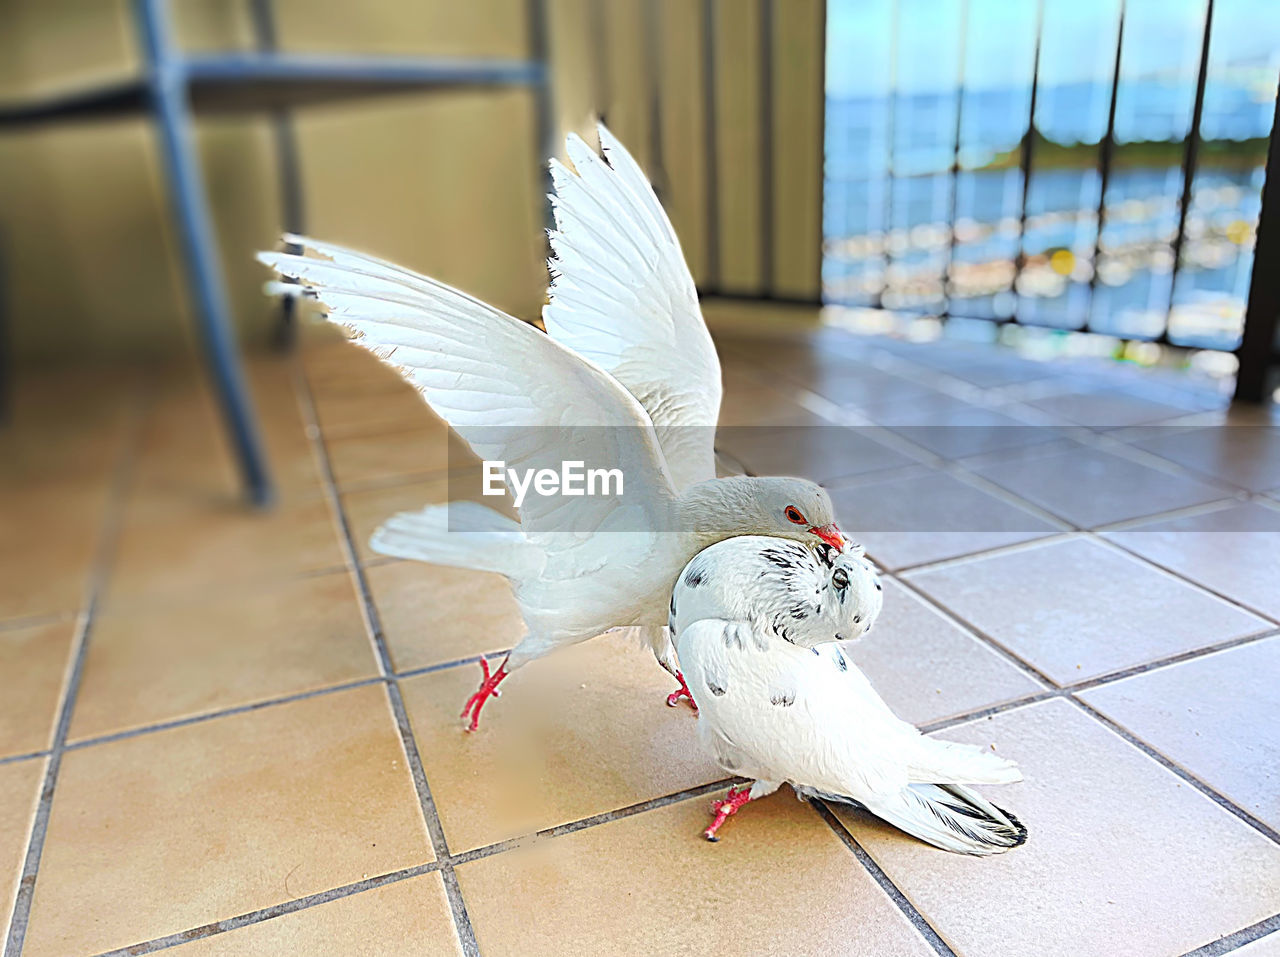 CLOSE-UP OF A BIRD FLYING OVER A TILED FLOOR